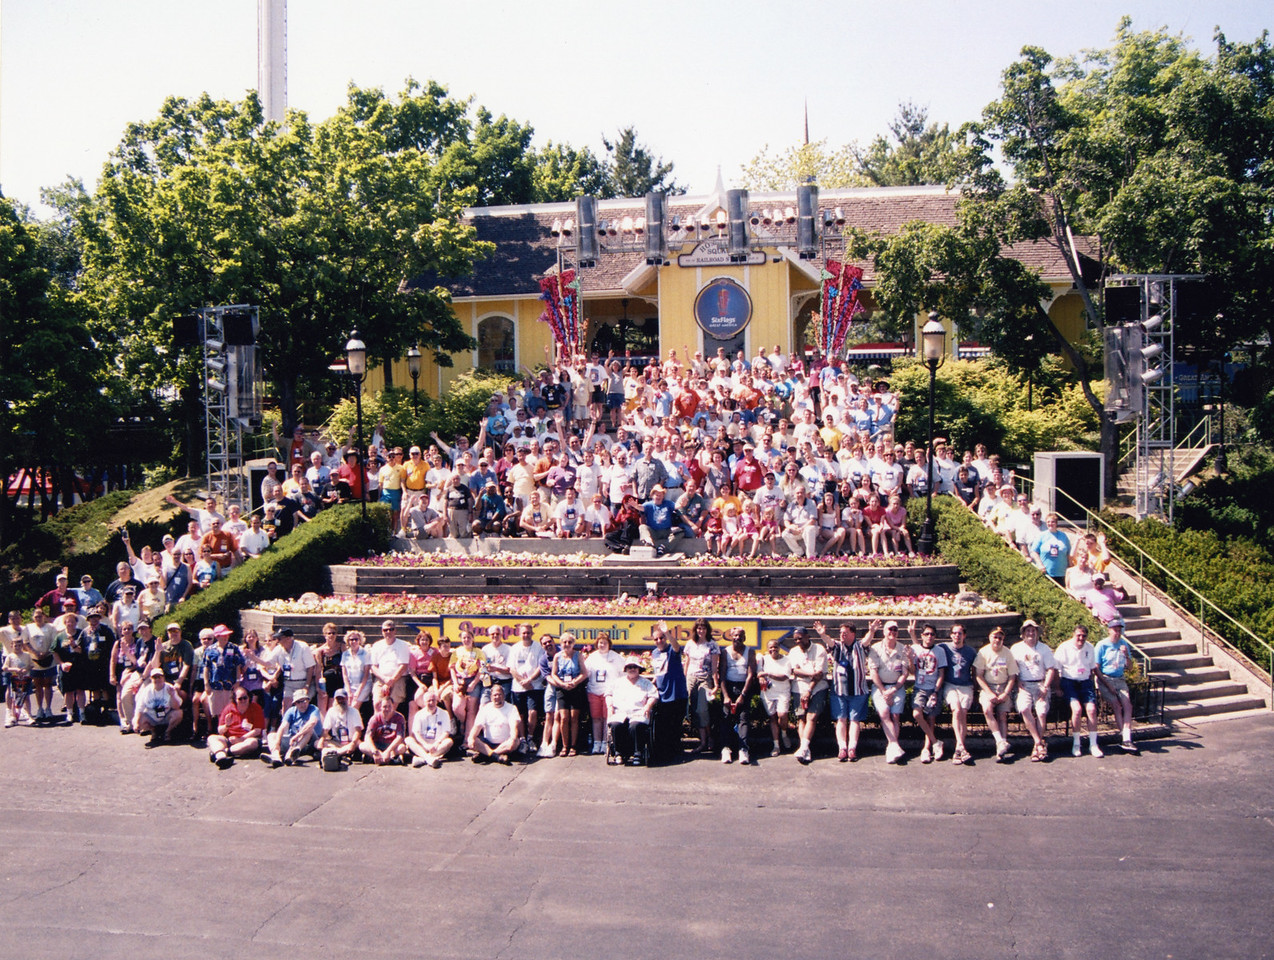 Coaster Con XXVII, held June 19–24, 2005 at Six Flags Great America, Little A-Merrick-A, and Mt. Olympus Theme Park. Photo taken at Six Flags Great America, by S. Madonna Horcher.